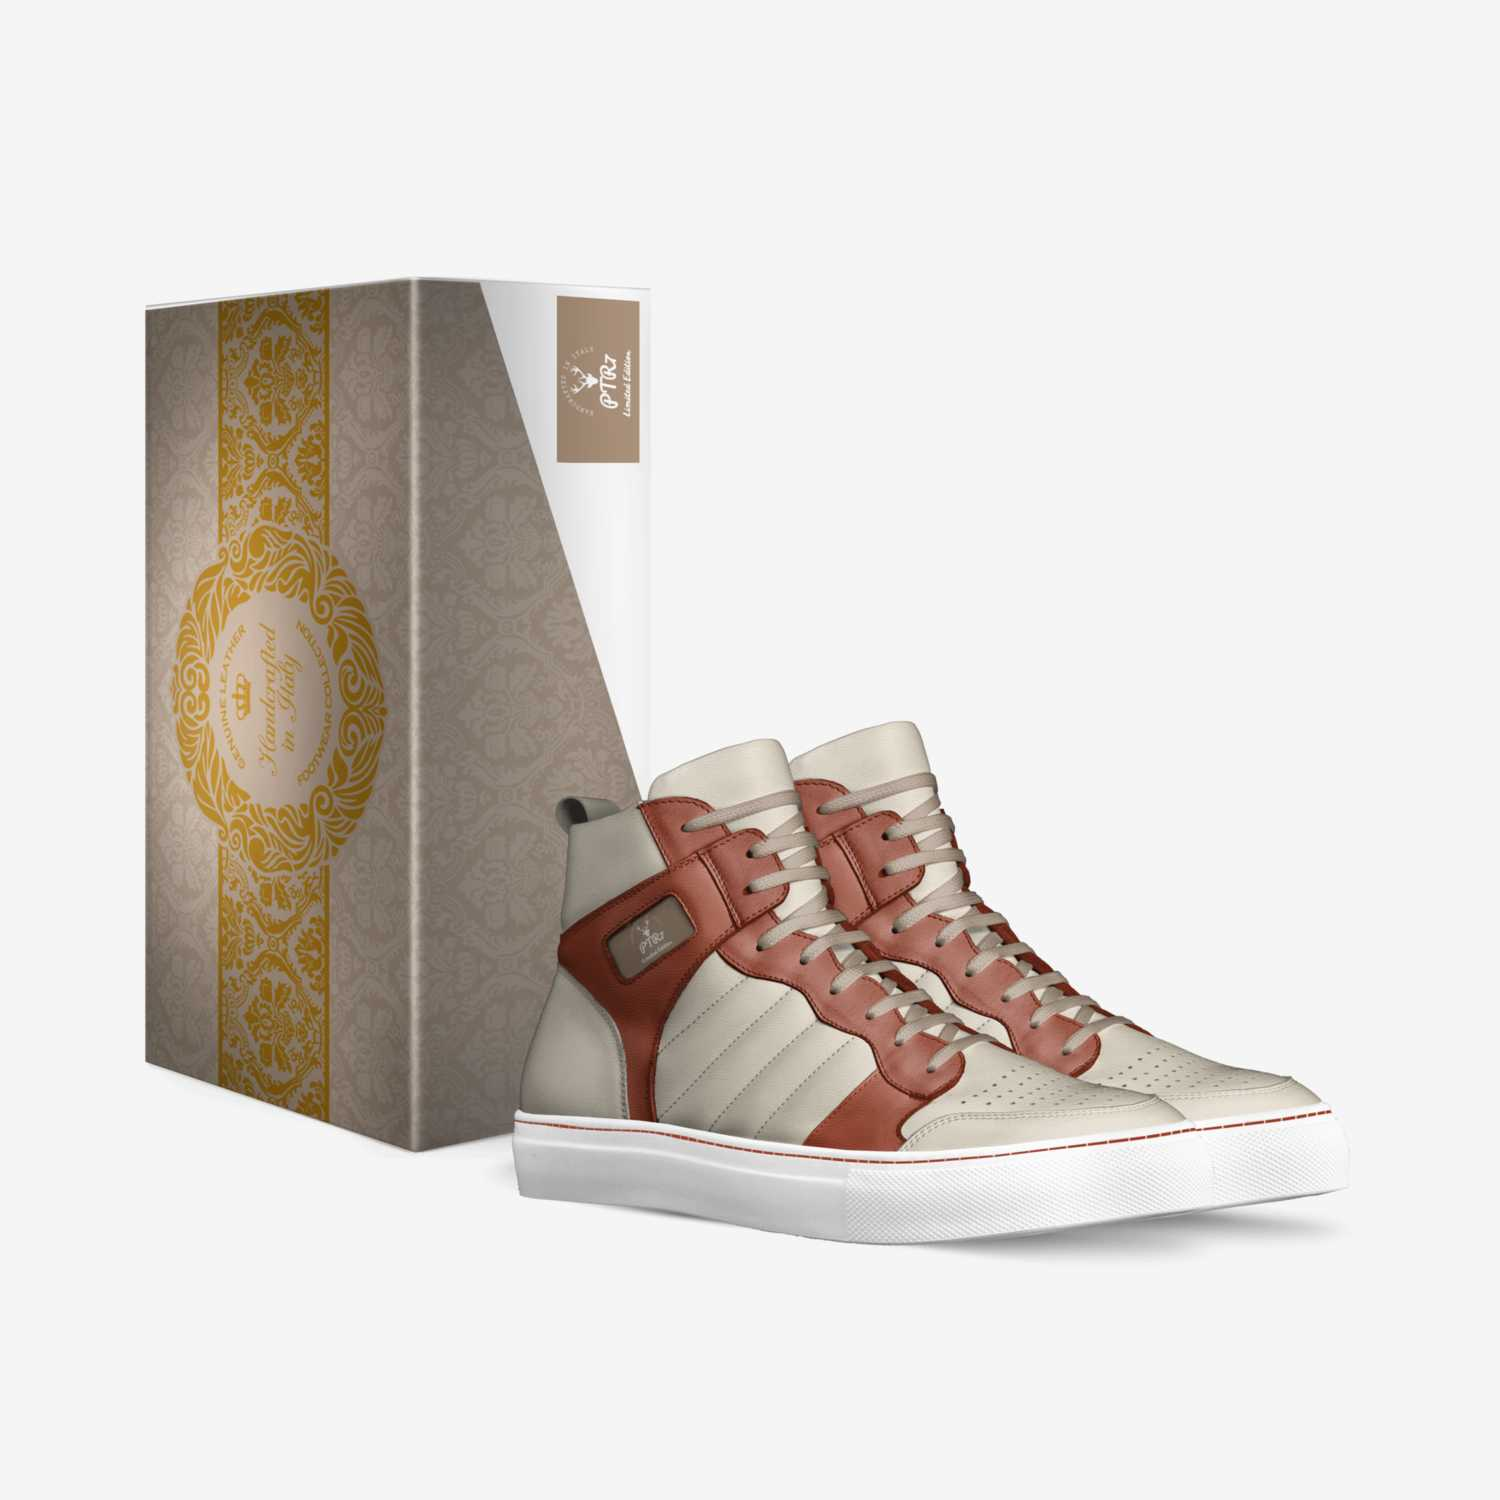 PTR7 custom made in Italy shoes by Emerson Murillo | Box view